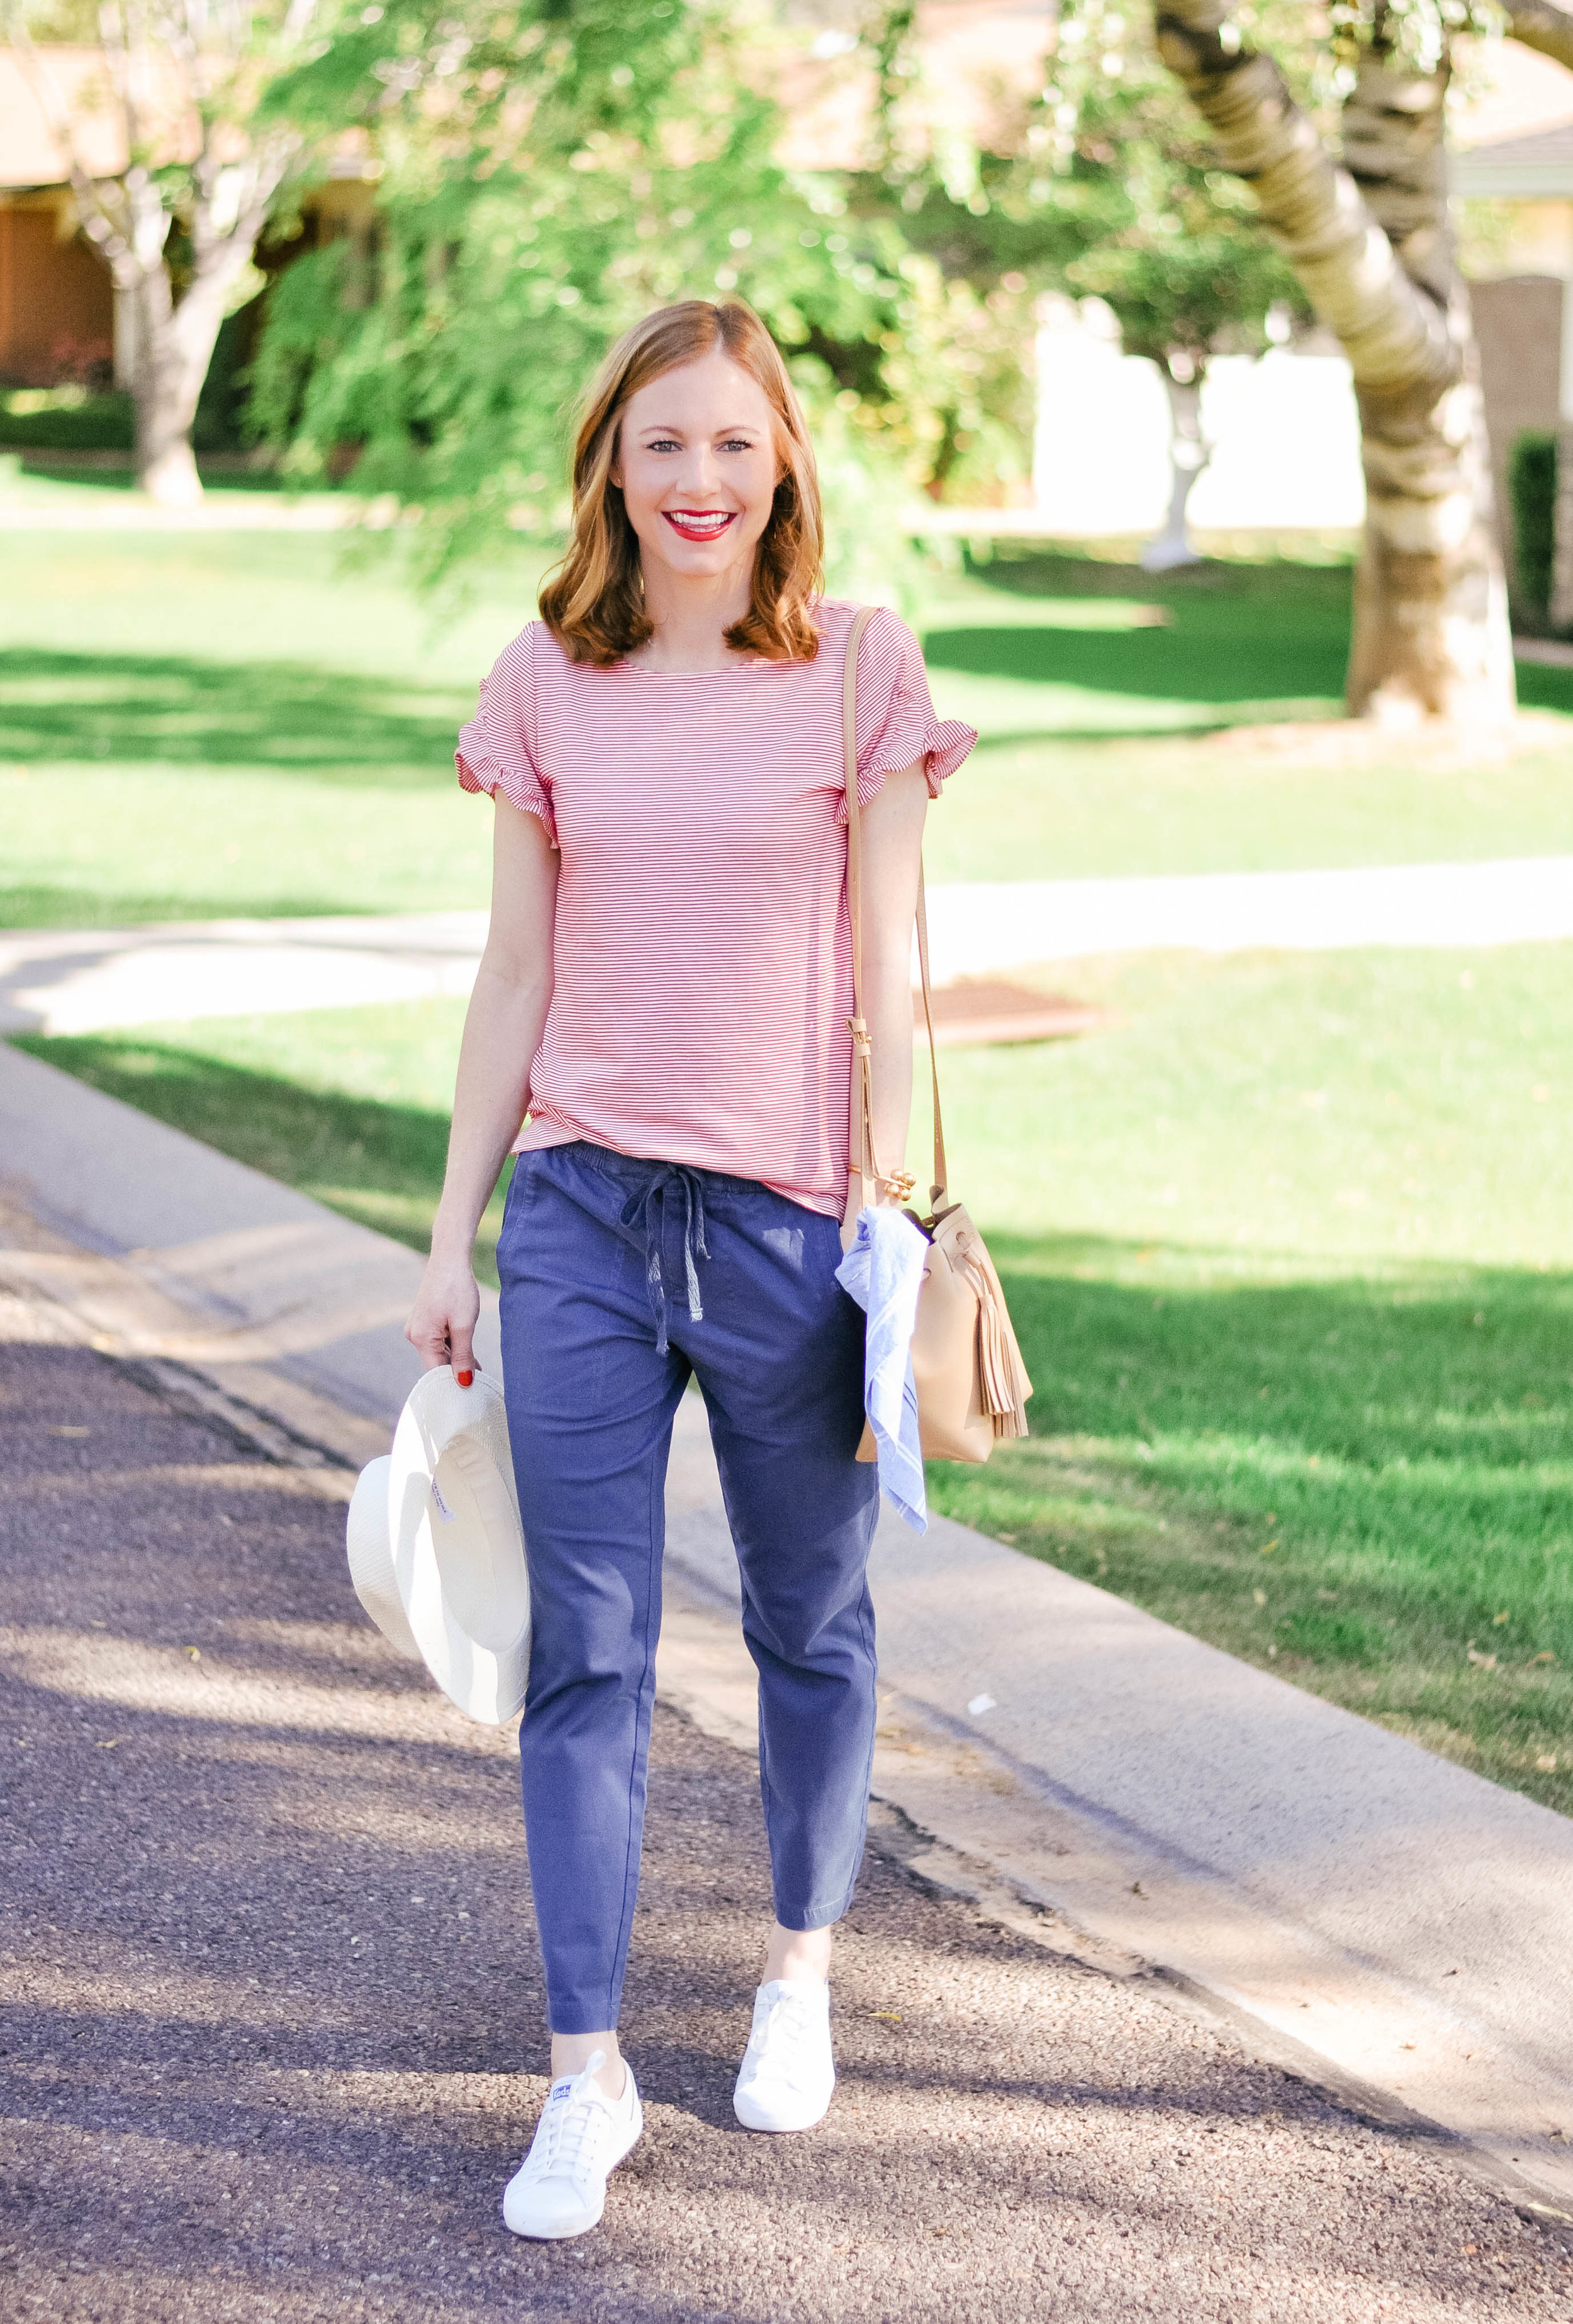 smiling woman in jeans and tee